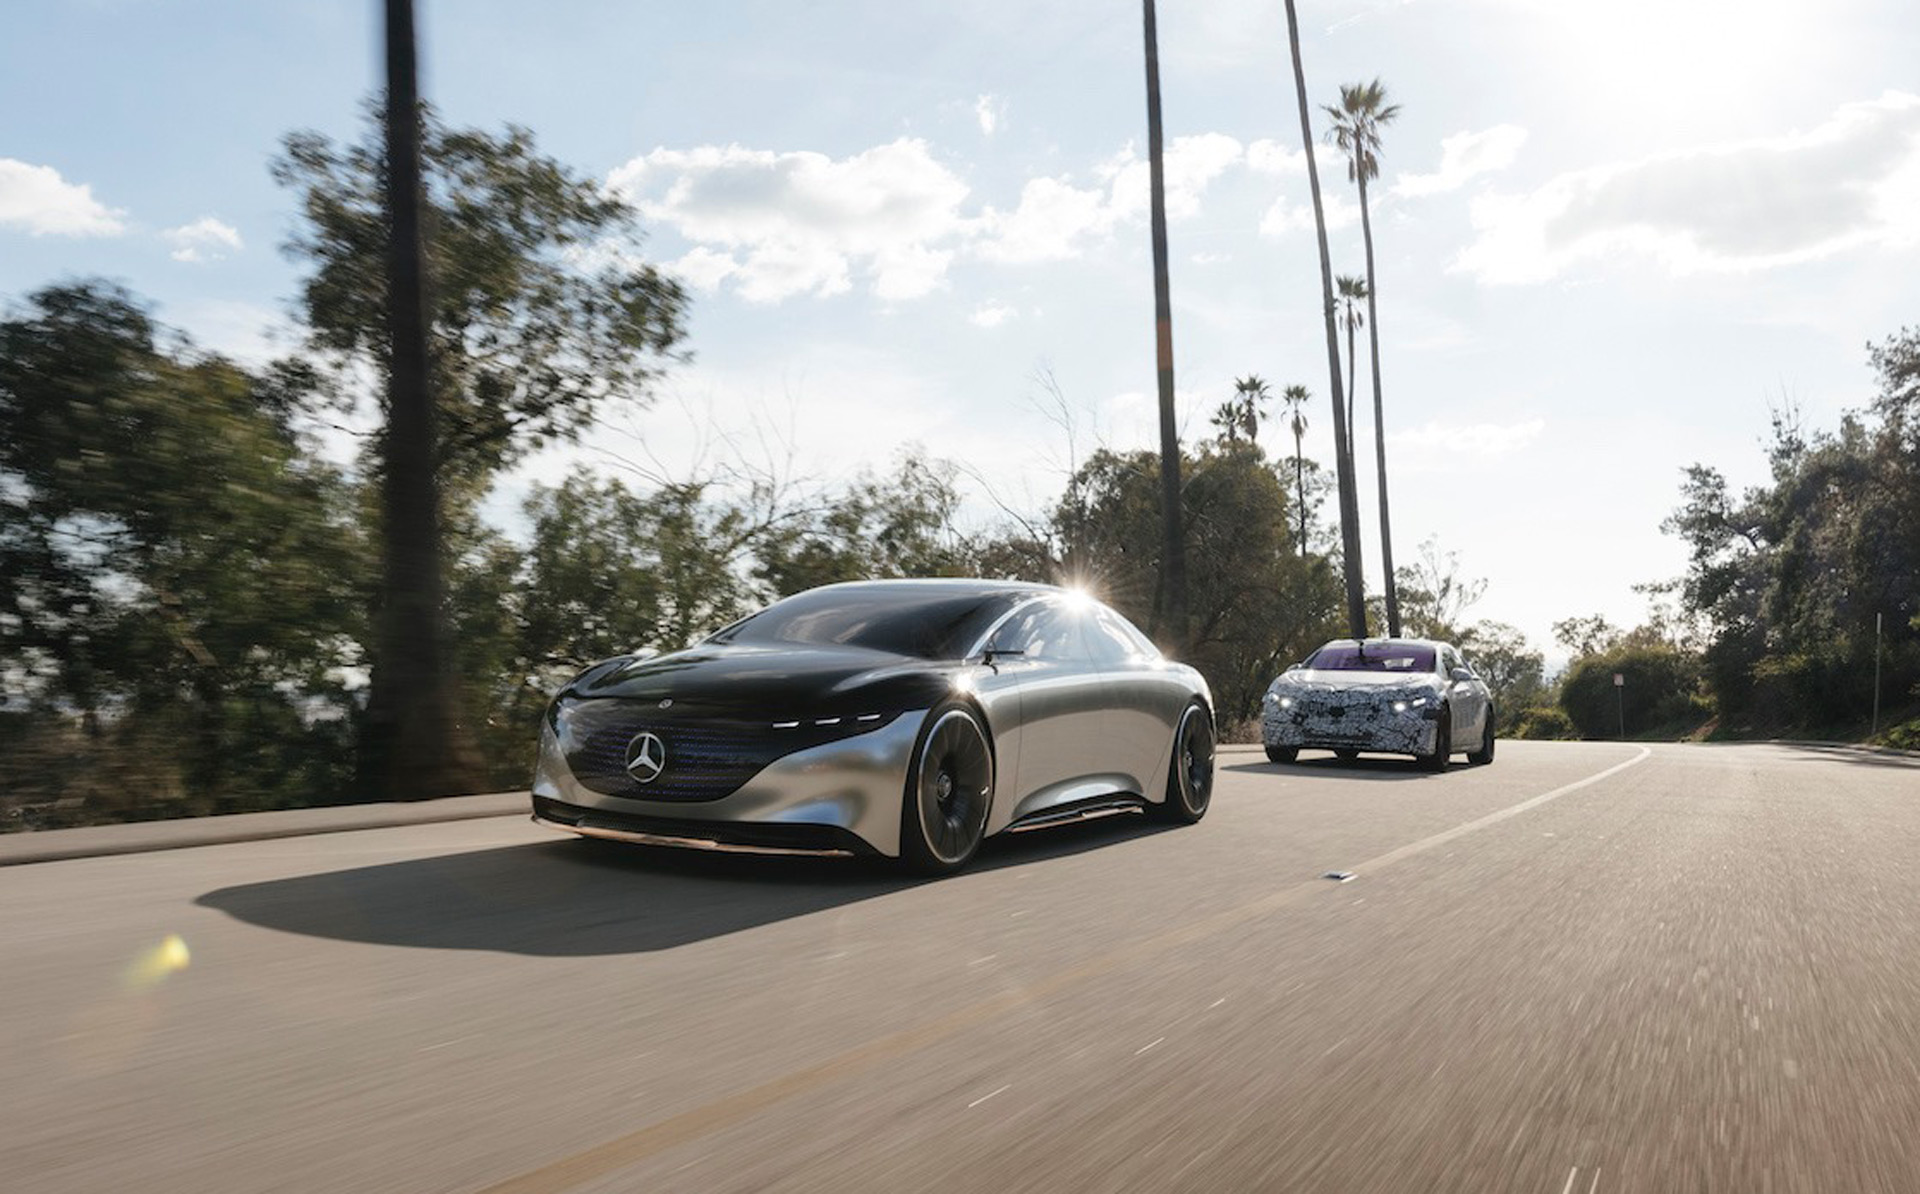 Mercedes EQS flagship will lead brand's electric vehicle rollout for the US